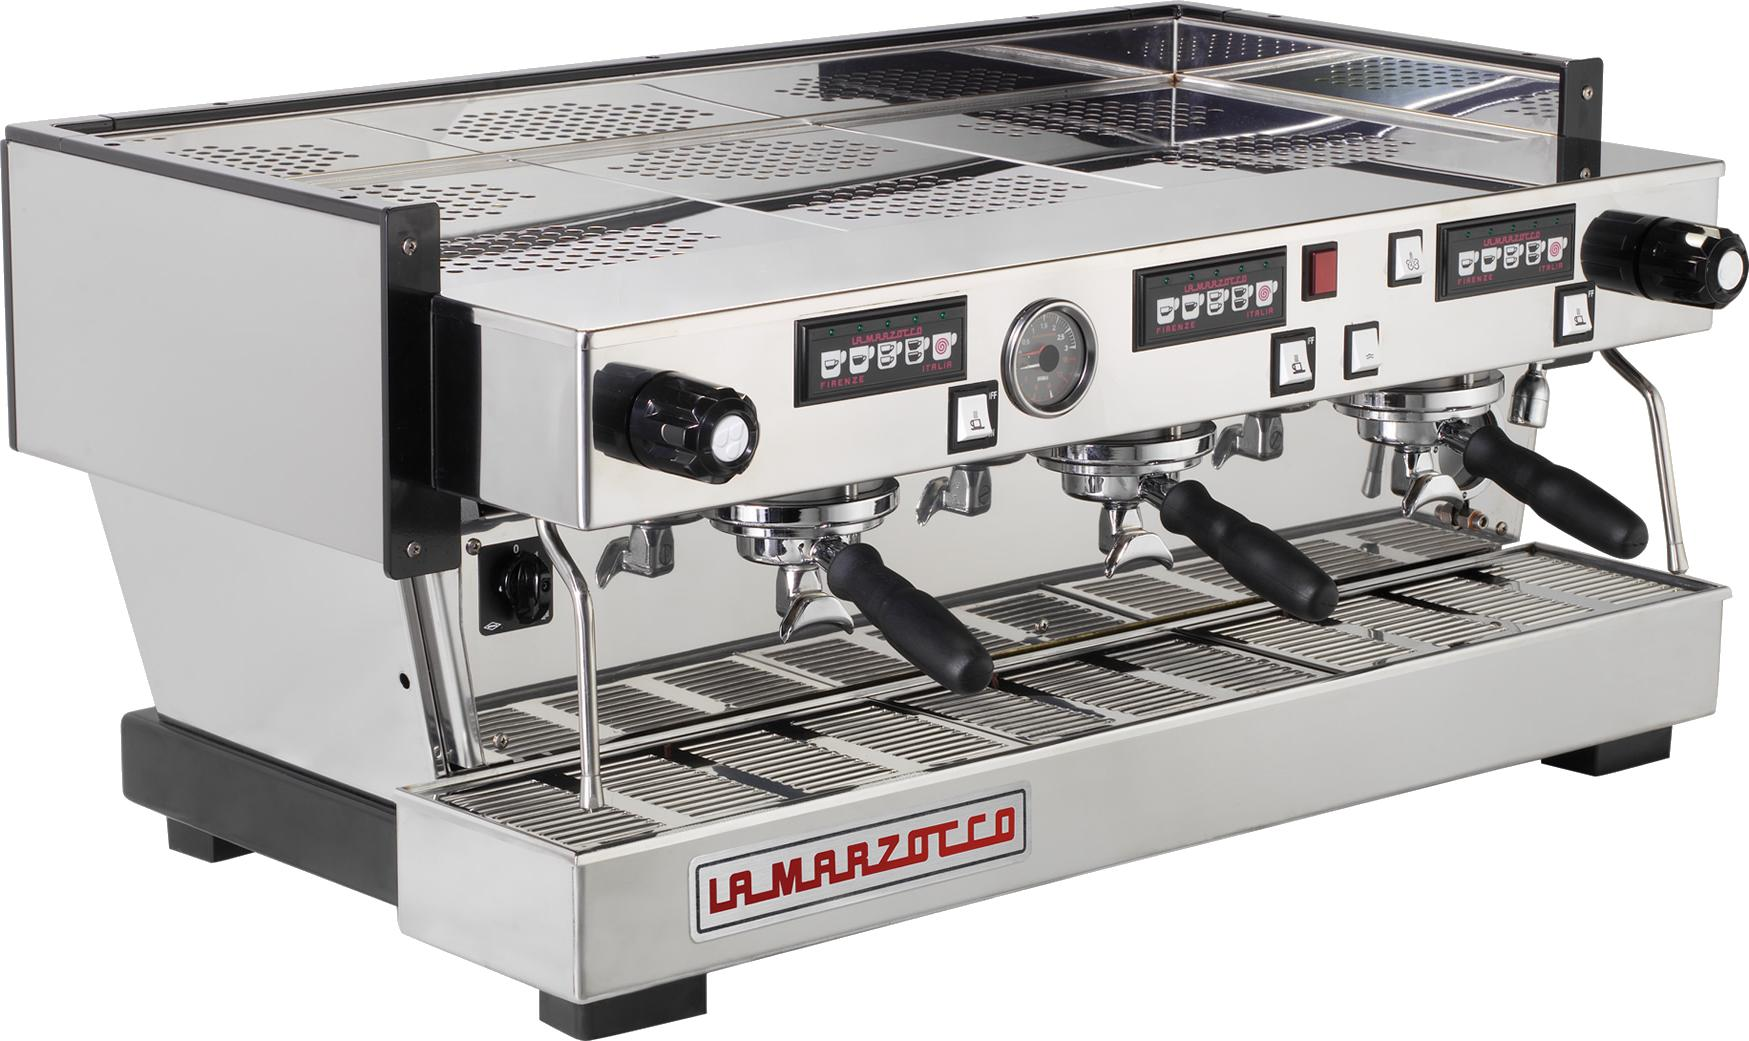 la marzocco linea classic vs la marzocco linea pb 2 group. Black Bedroom Furniture Sets. Home Design Ideas